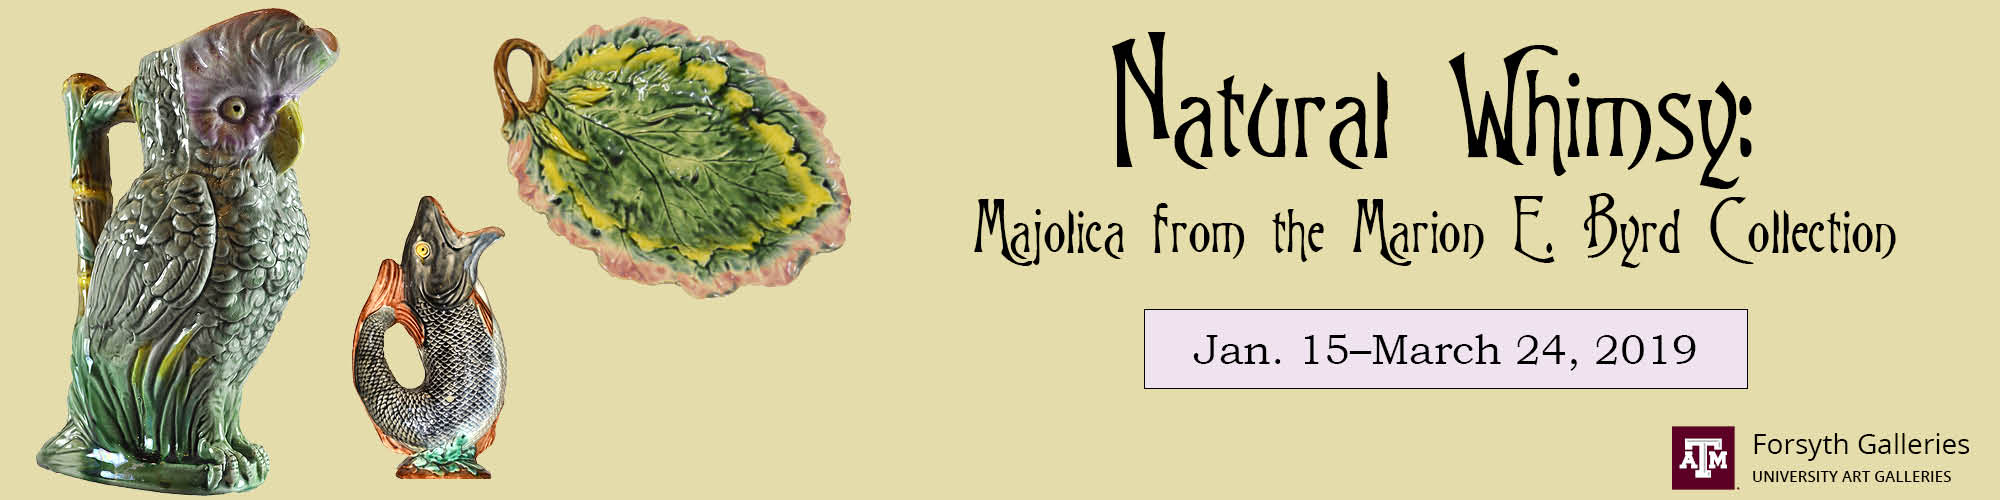 Natural Whimsy: Majolica from the Marion E. Byrd Collection Jan. 15-March 24, 2019